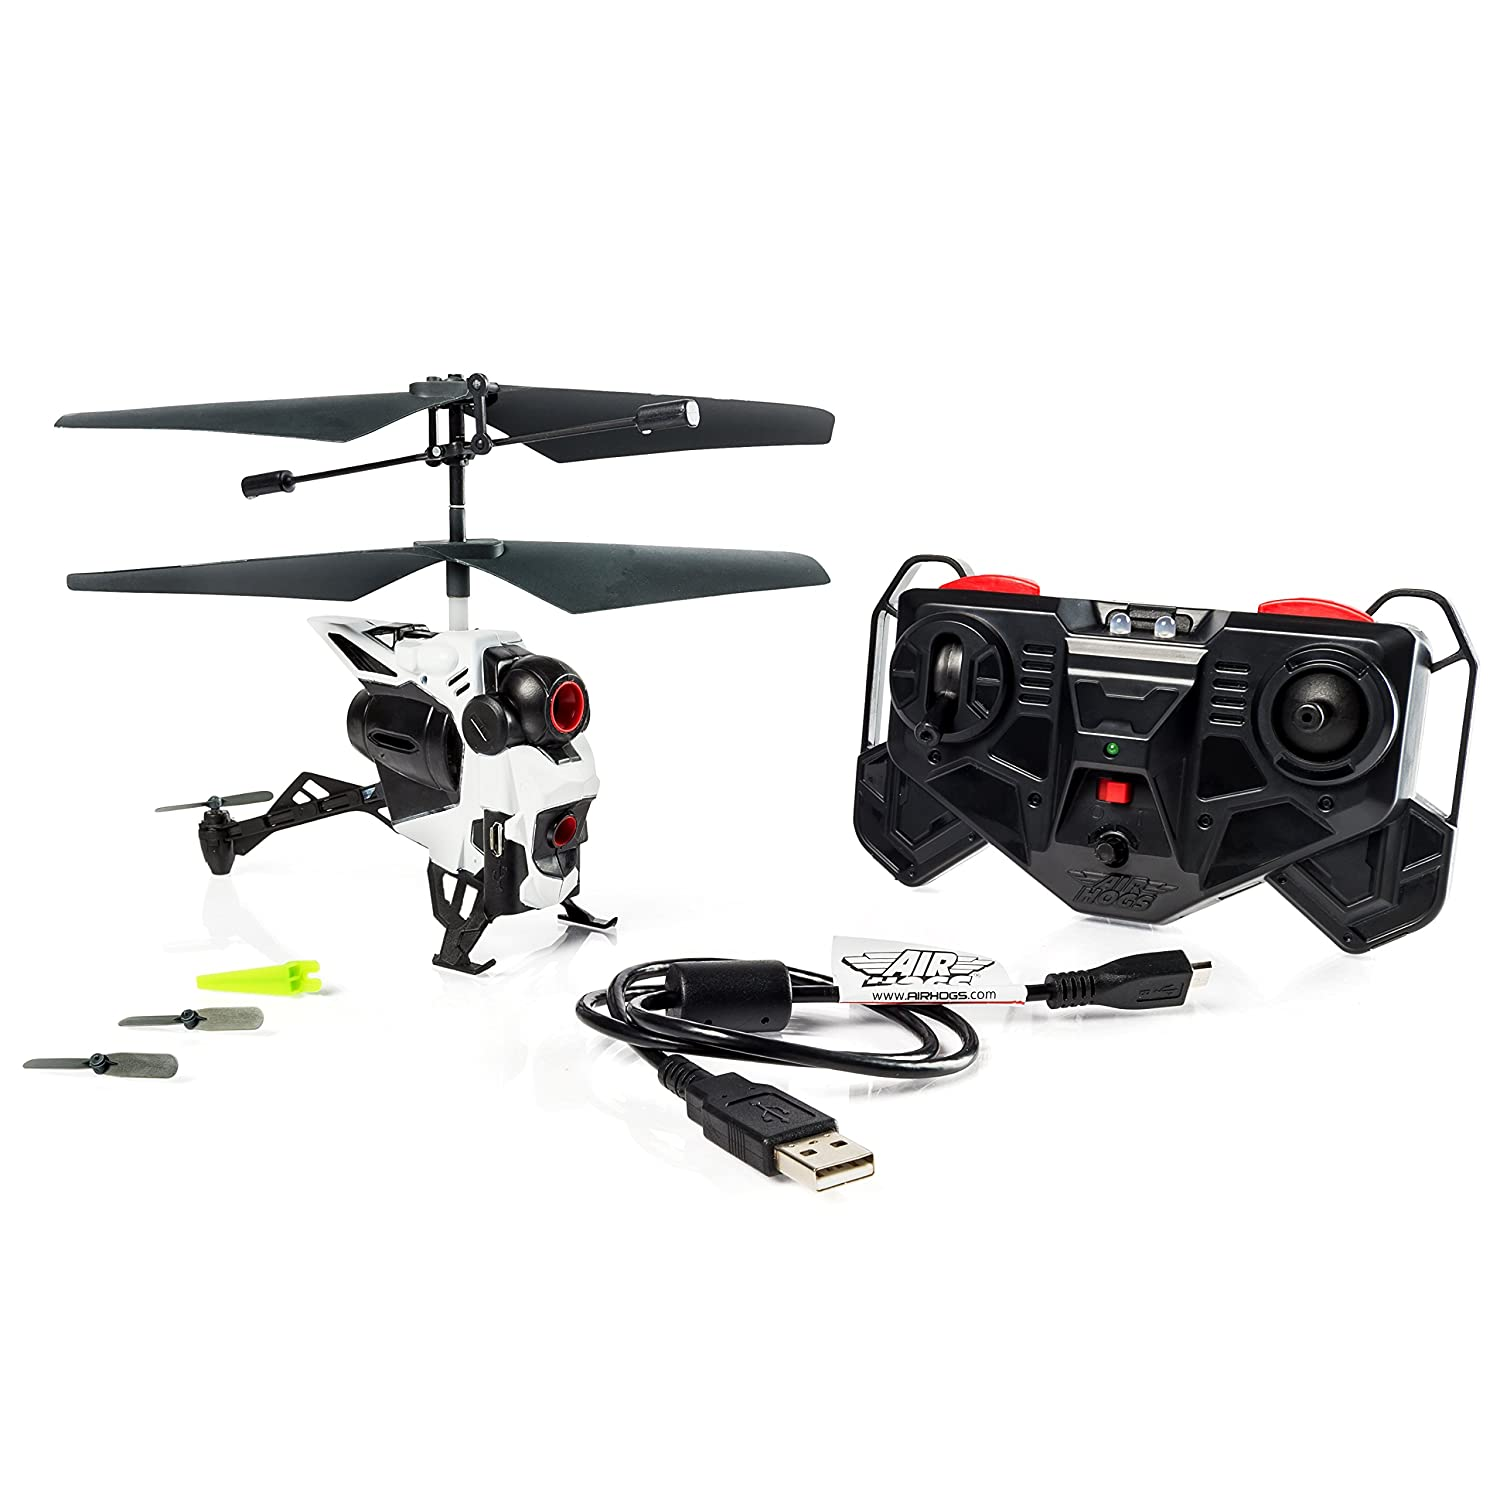 Air Hogs Altitude Camera Copter: Amazon.es: Juguetes y juegos